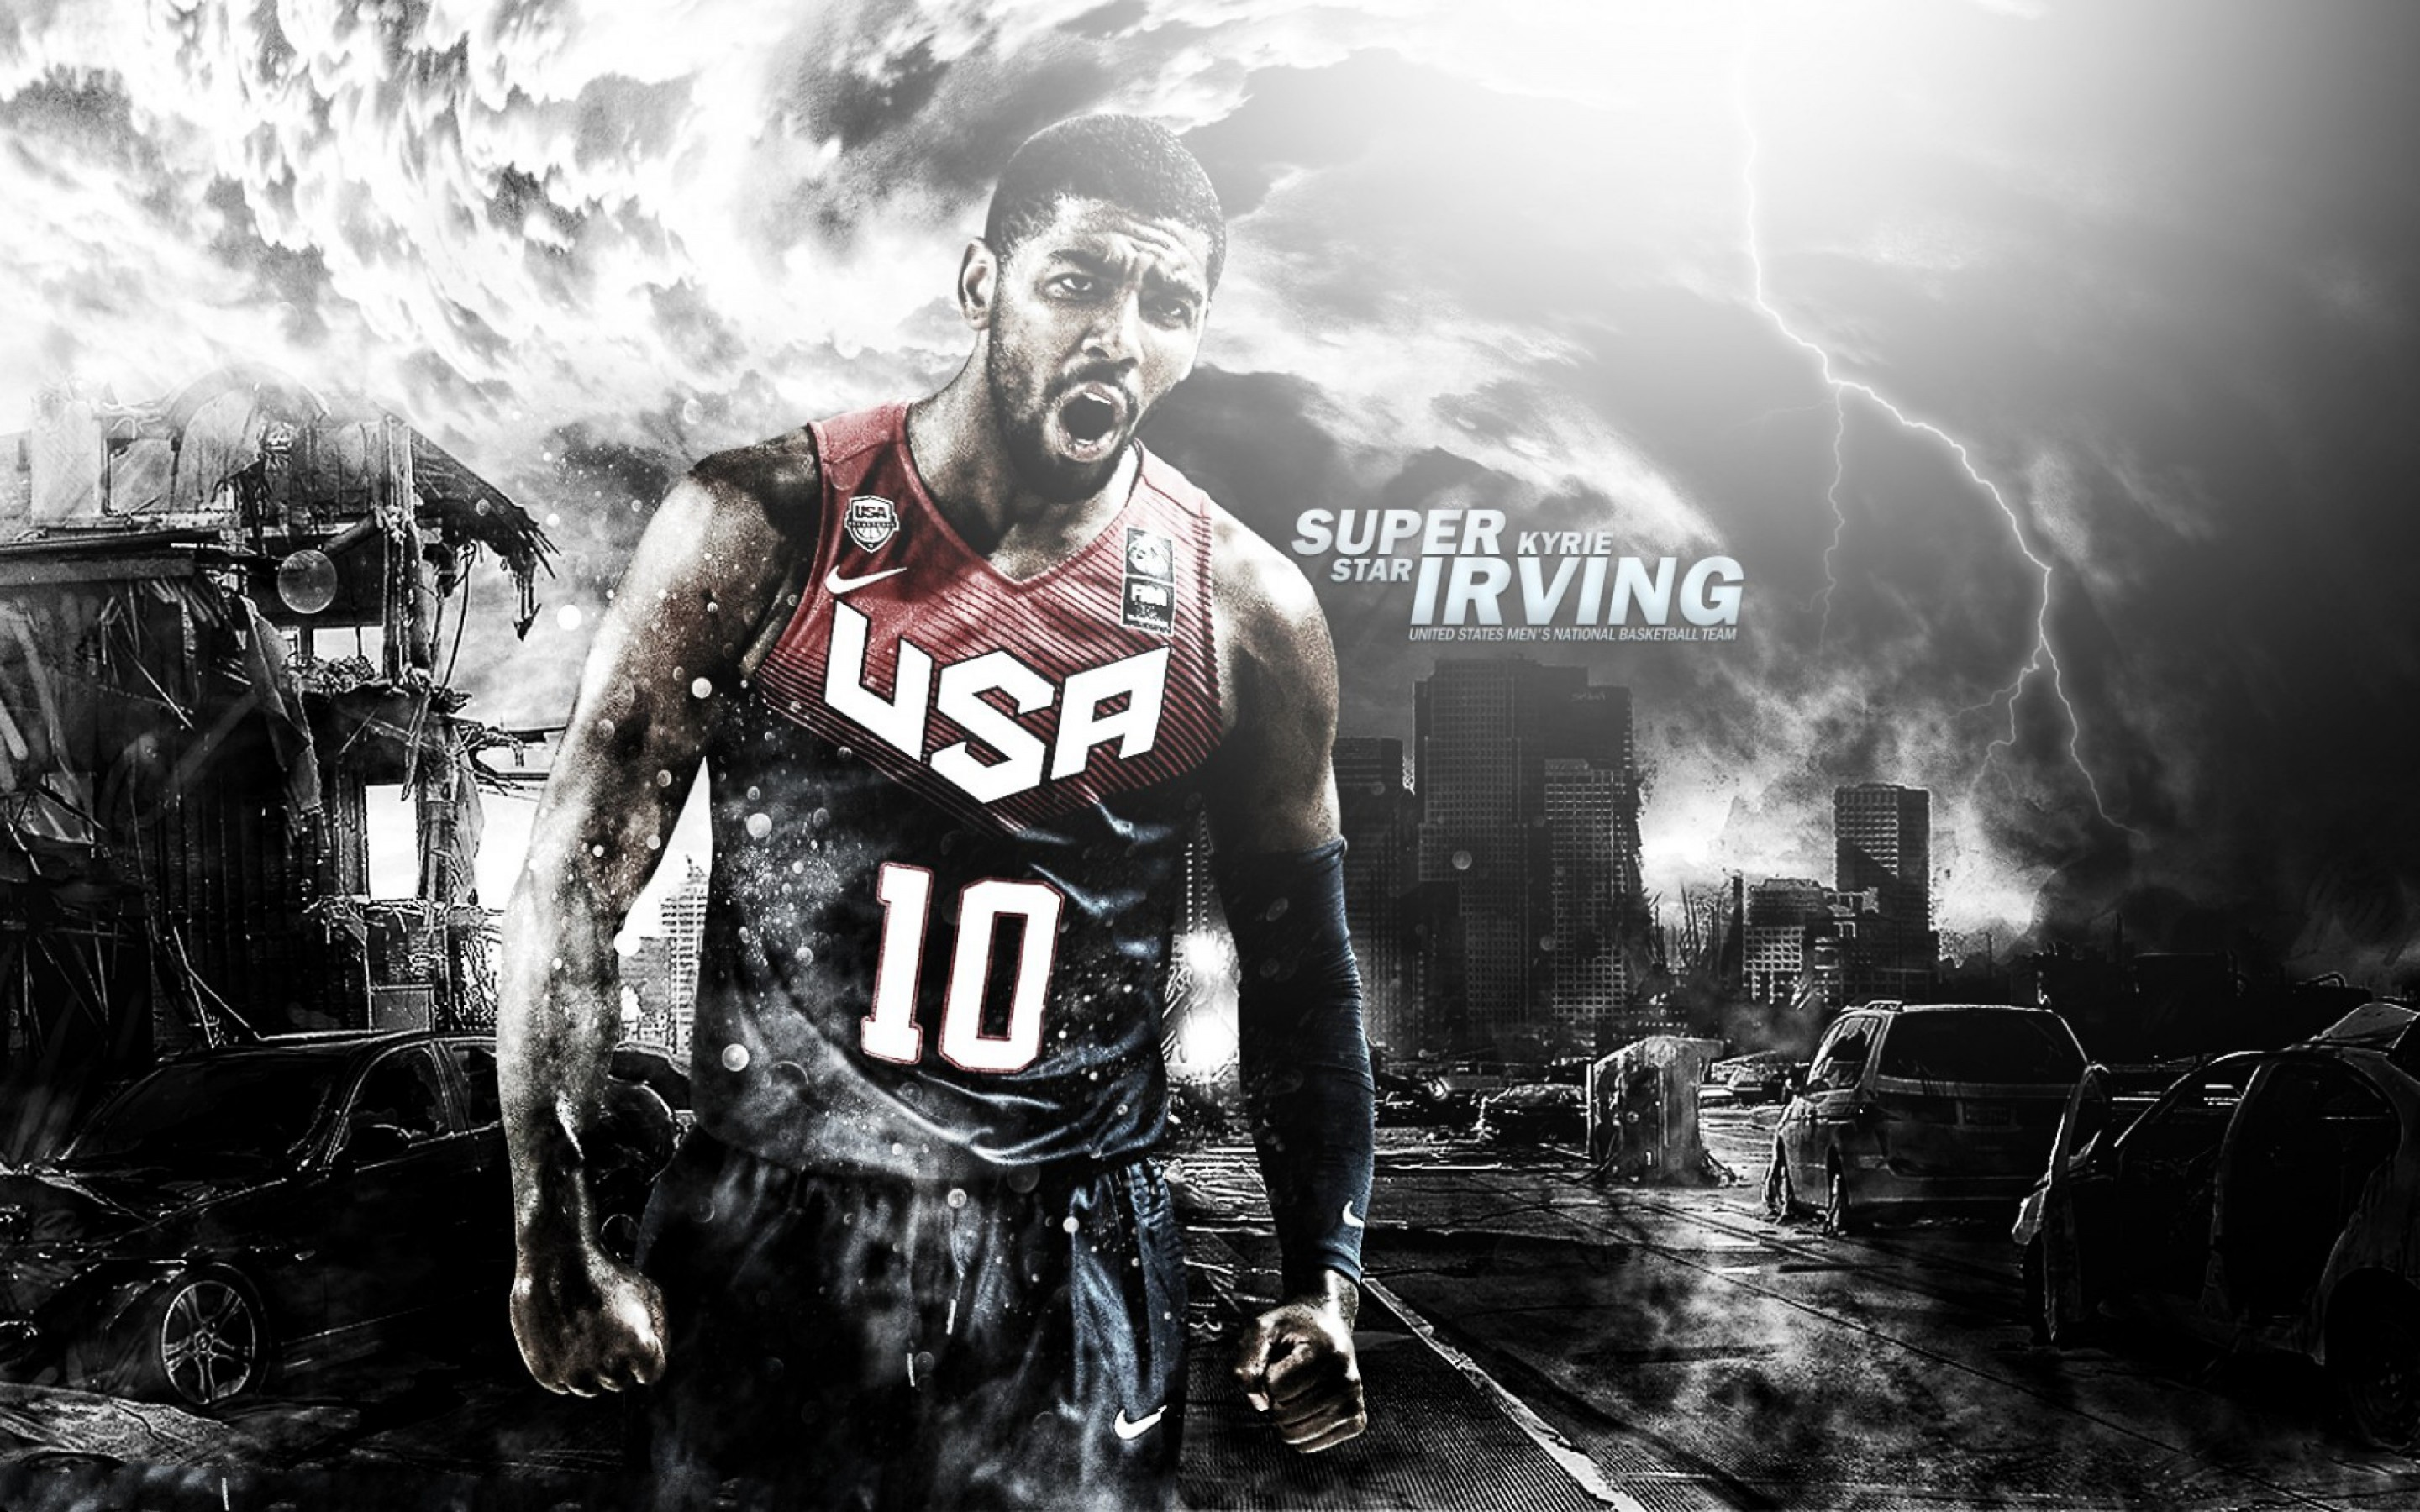 2880x1800 HD Kyrie Irving Android Wallpaper.